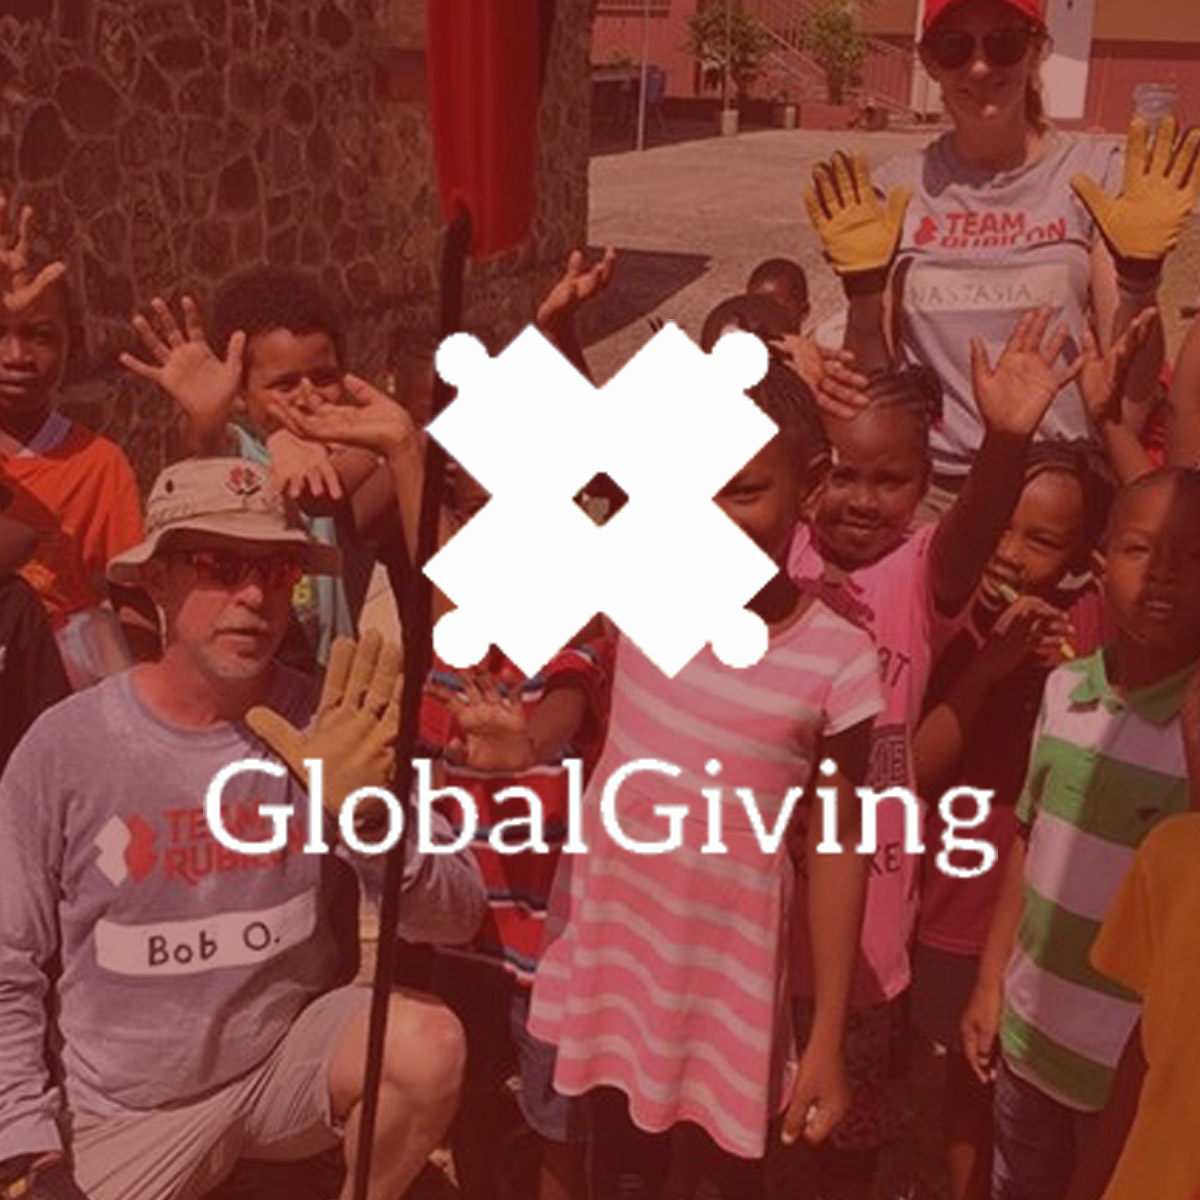 Global Giving allows anyone to donate to the BVI's efforts in rebuilding the country by sponsoring volunteers. With a sponsorship, you are kept up to date wtih photos, emails, and reports. Donate once or donate monthly!